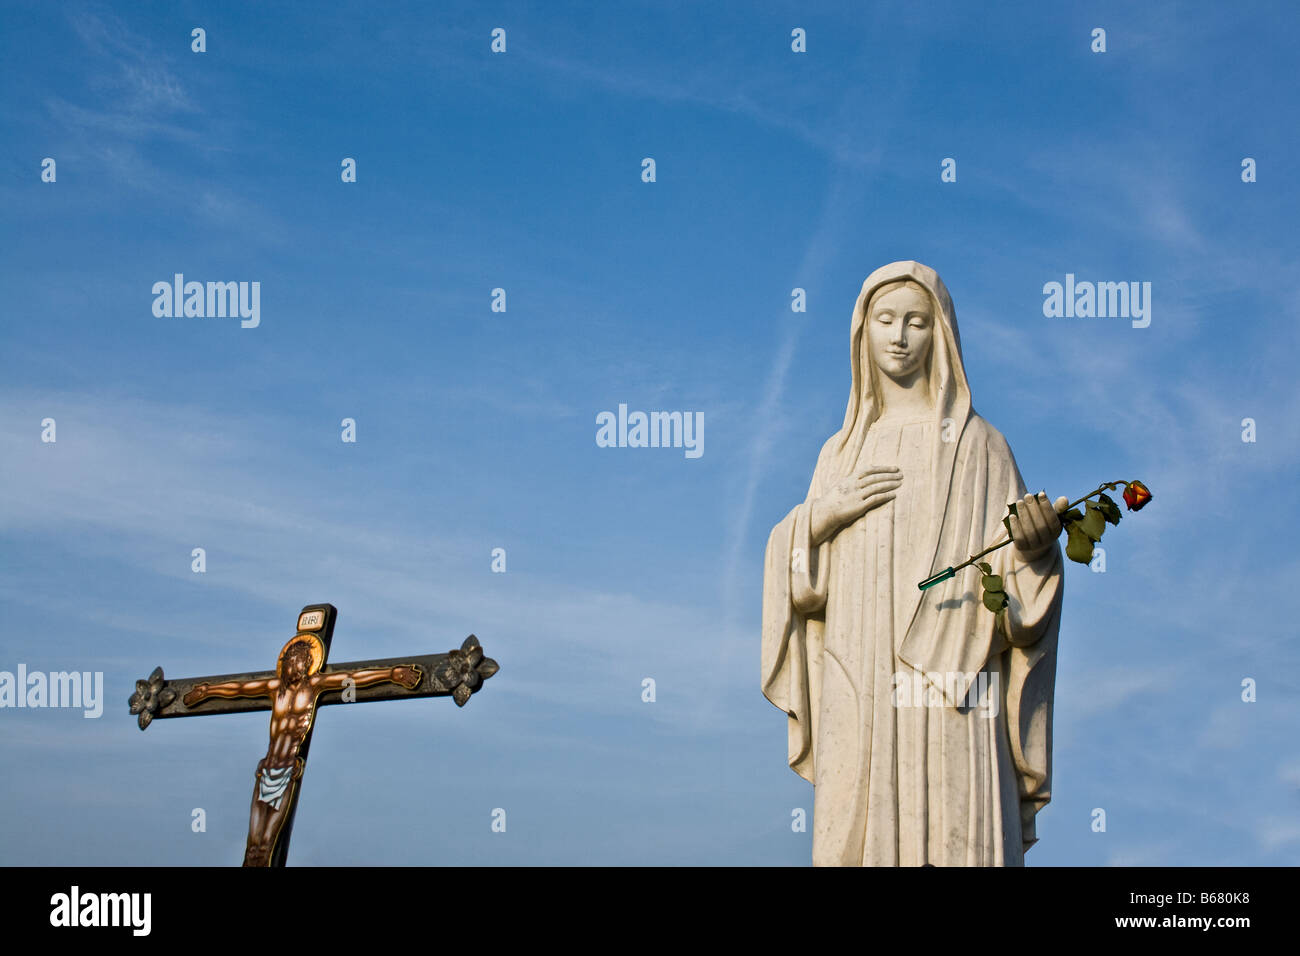 Blessed Virgin Mary statue and a cross in the sanctuary Medjugorje, Bosnia Herzegovina - Stock Image